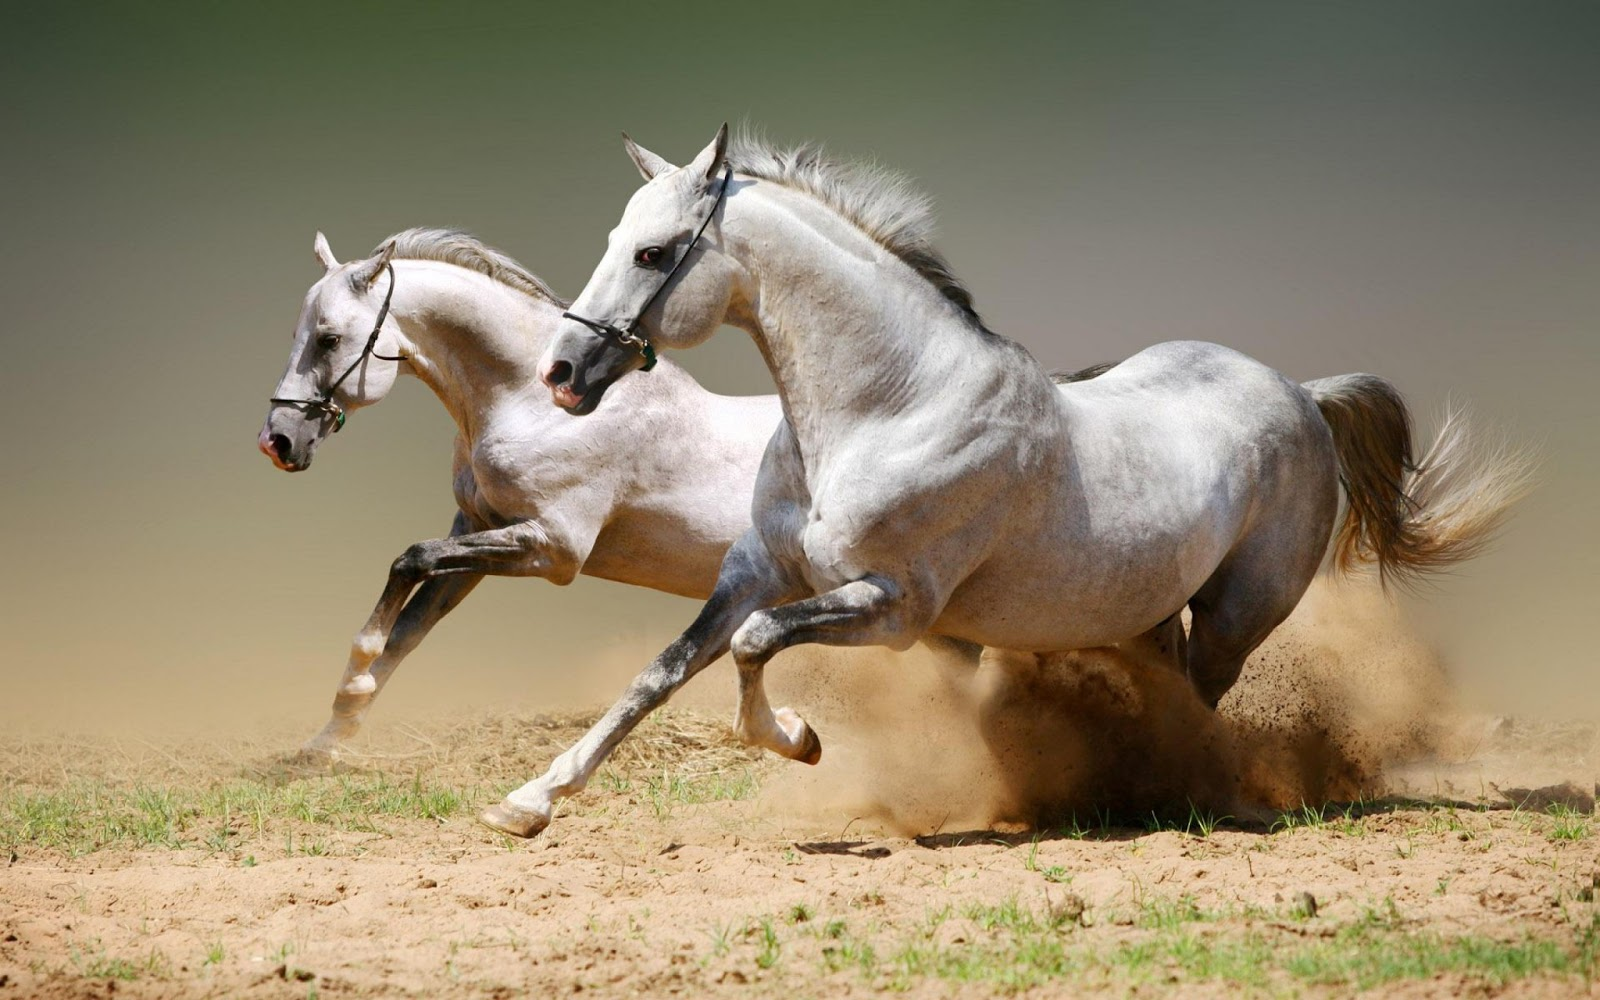 Great   Wallpaper Horse Couple - amazing+white+horses+background+hd+wallpaper+free  You Should Have_754815.jpg